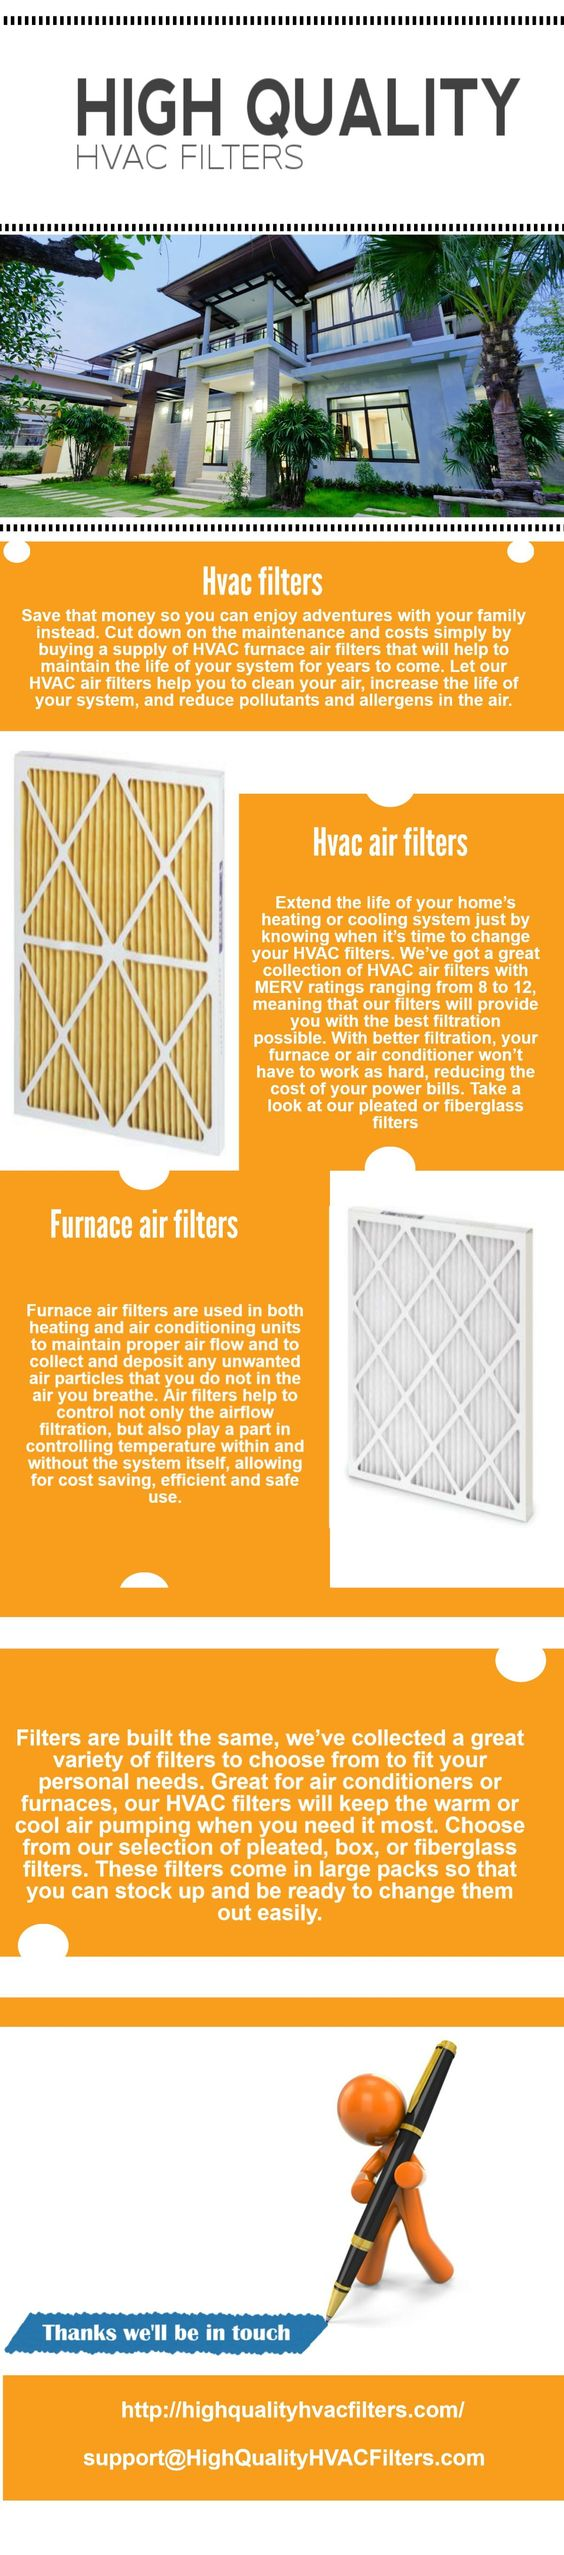 High Quality Hvac Filters Infographic Highquality Hvacfilters